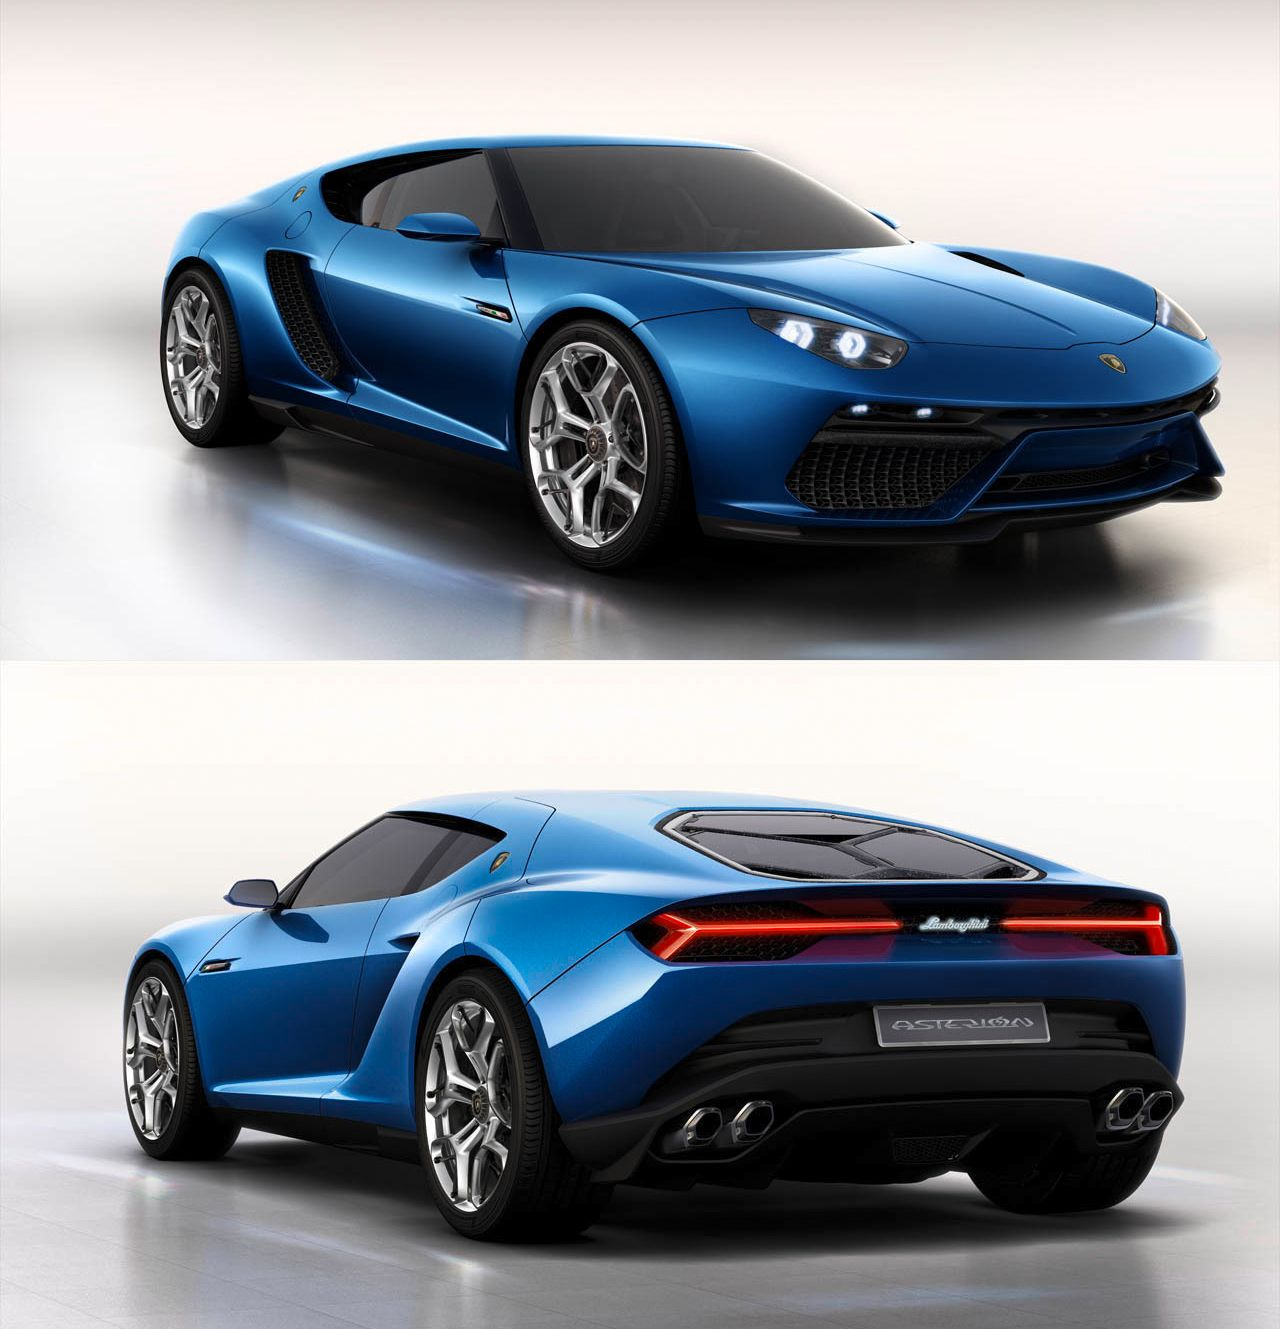 Lamborghini Asterion: Lamborghini Asterion LPI 910-4 Concept Car To Be Announced